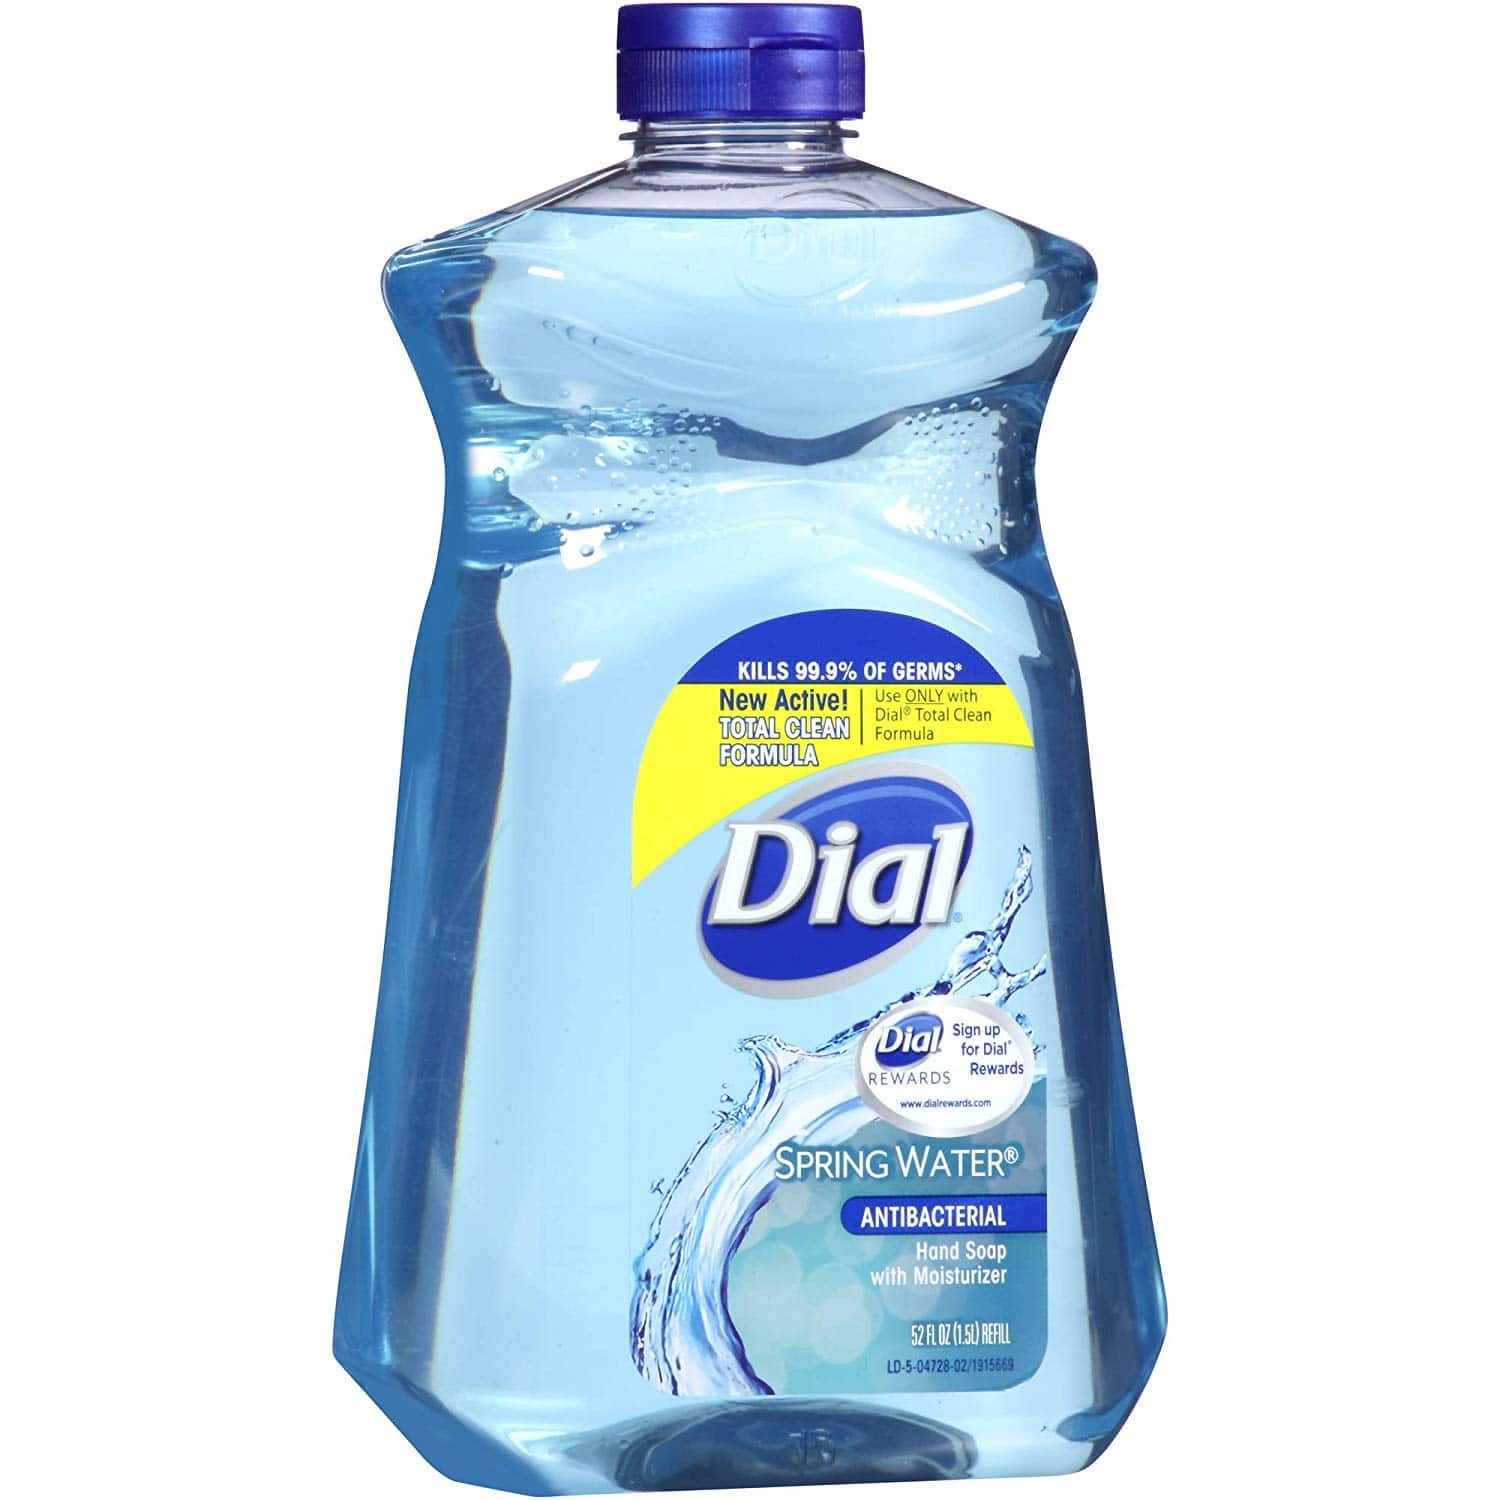 Dial Antibacterial Hand Soap with Moisturizer, Spring Water Scent, 52oz. - $3.97 at Amazon + FS with prime